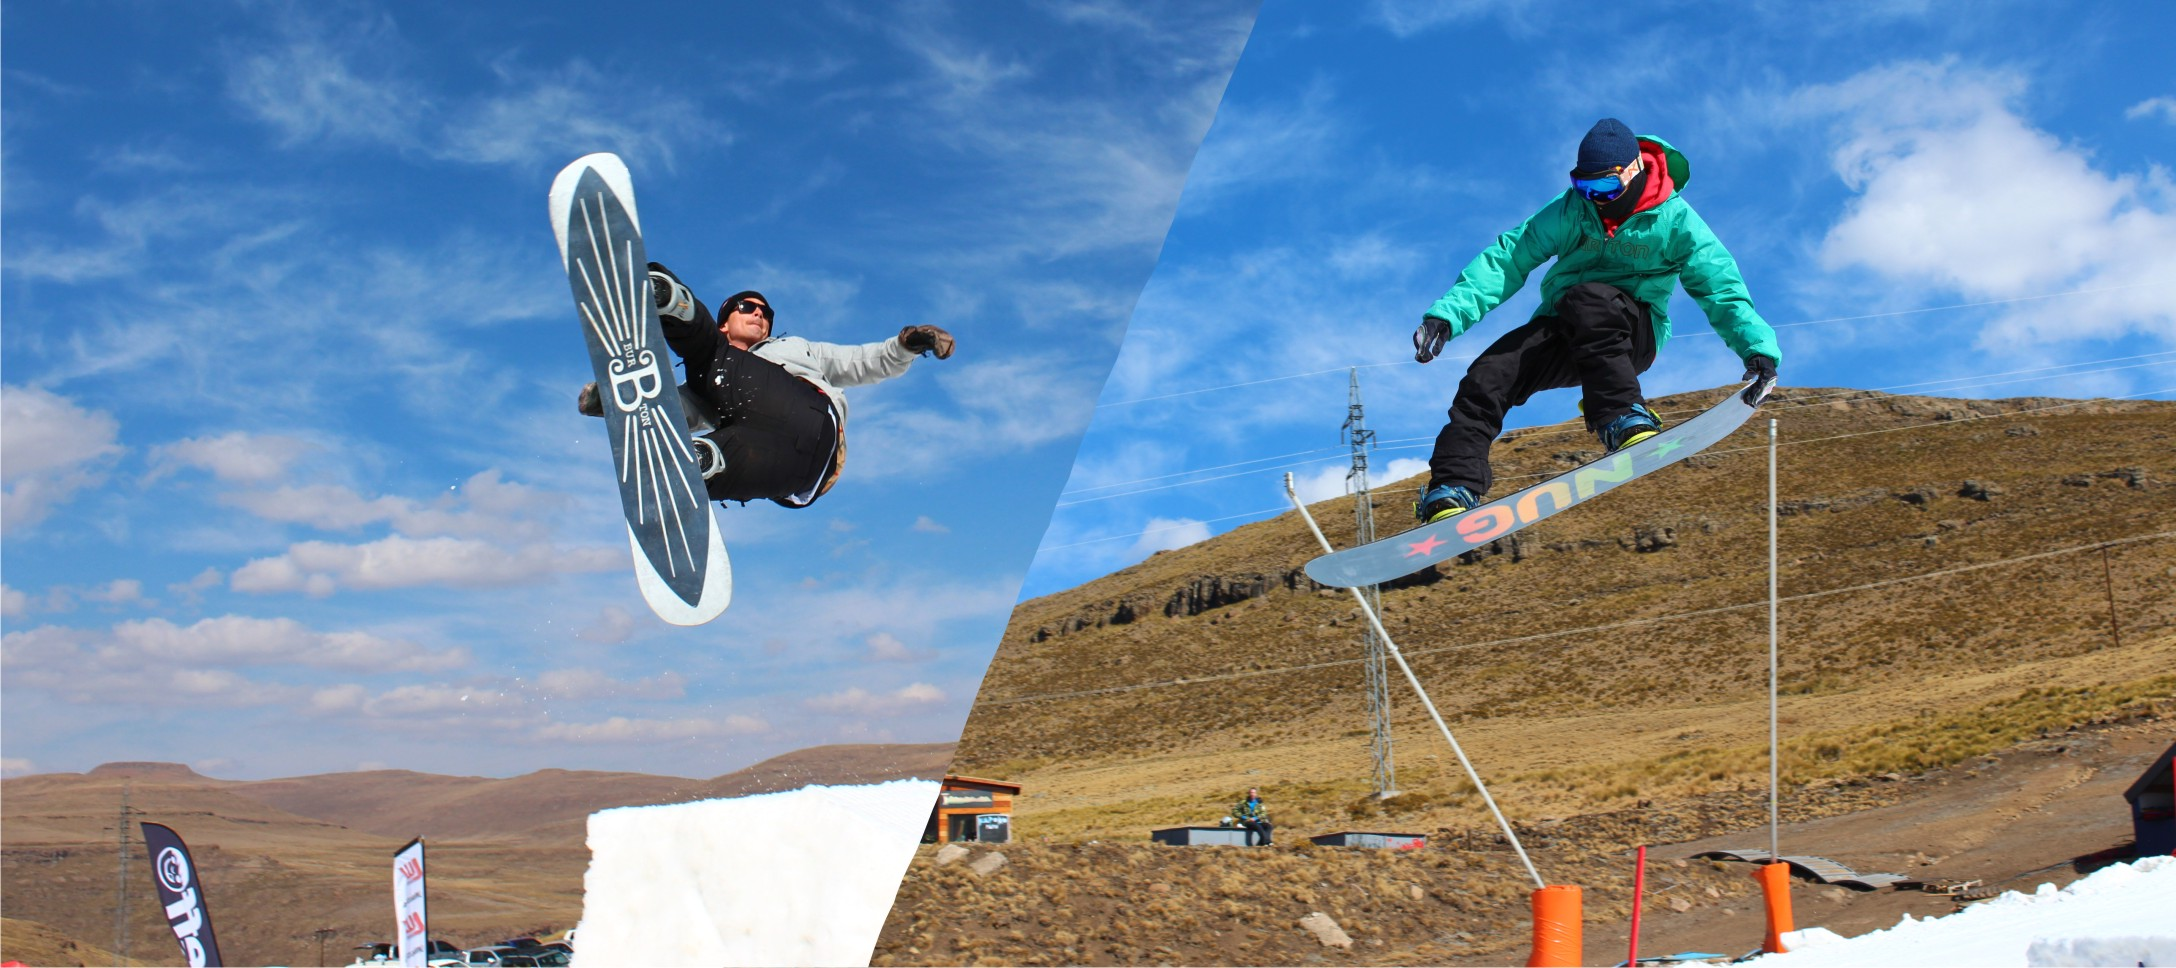 Grilo and Roope snowboarding in South Africa